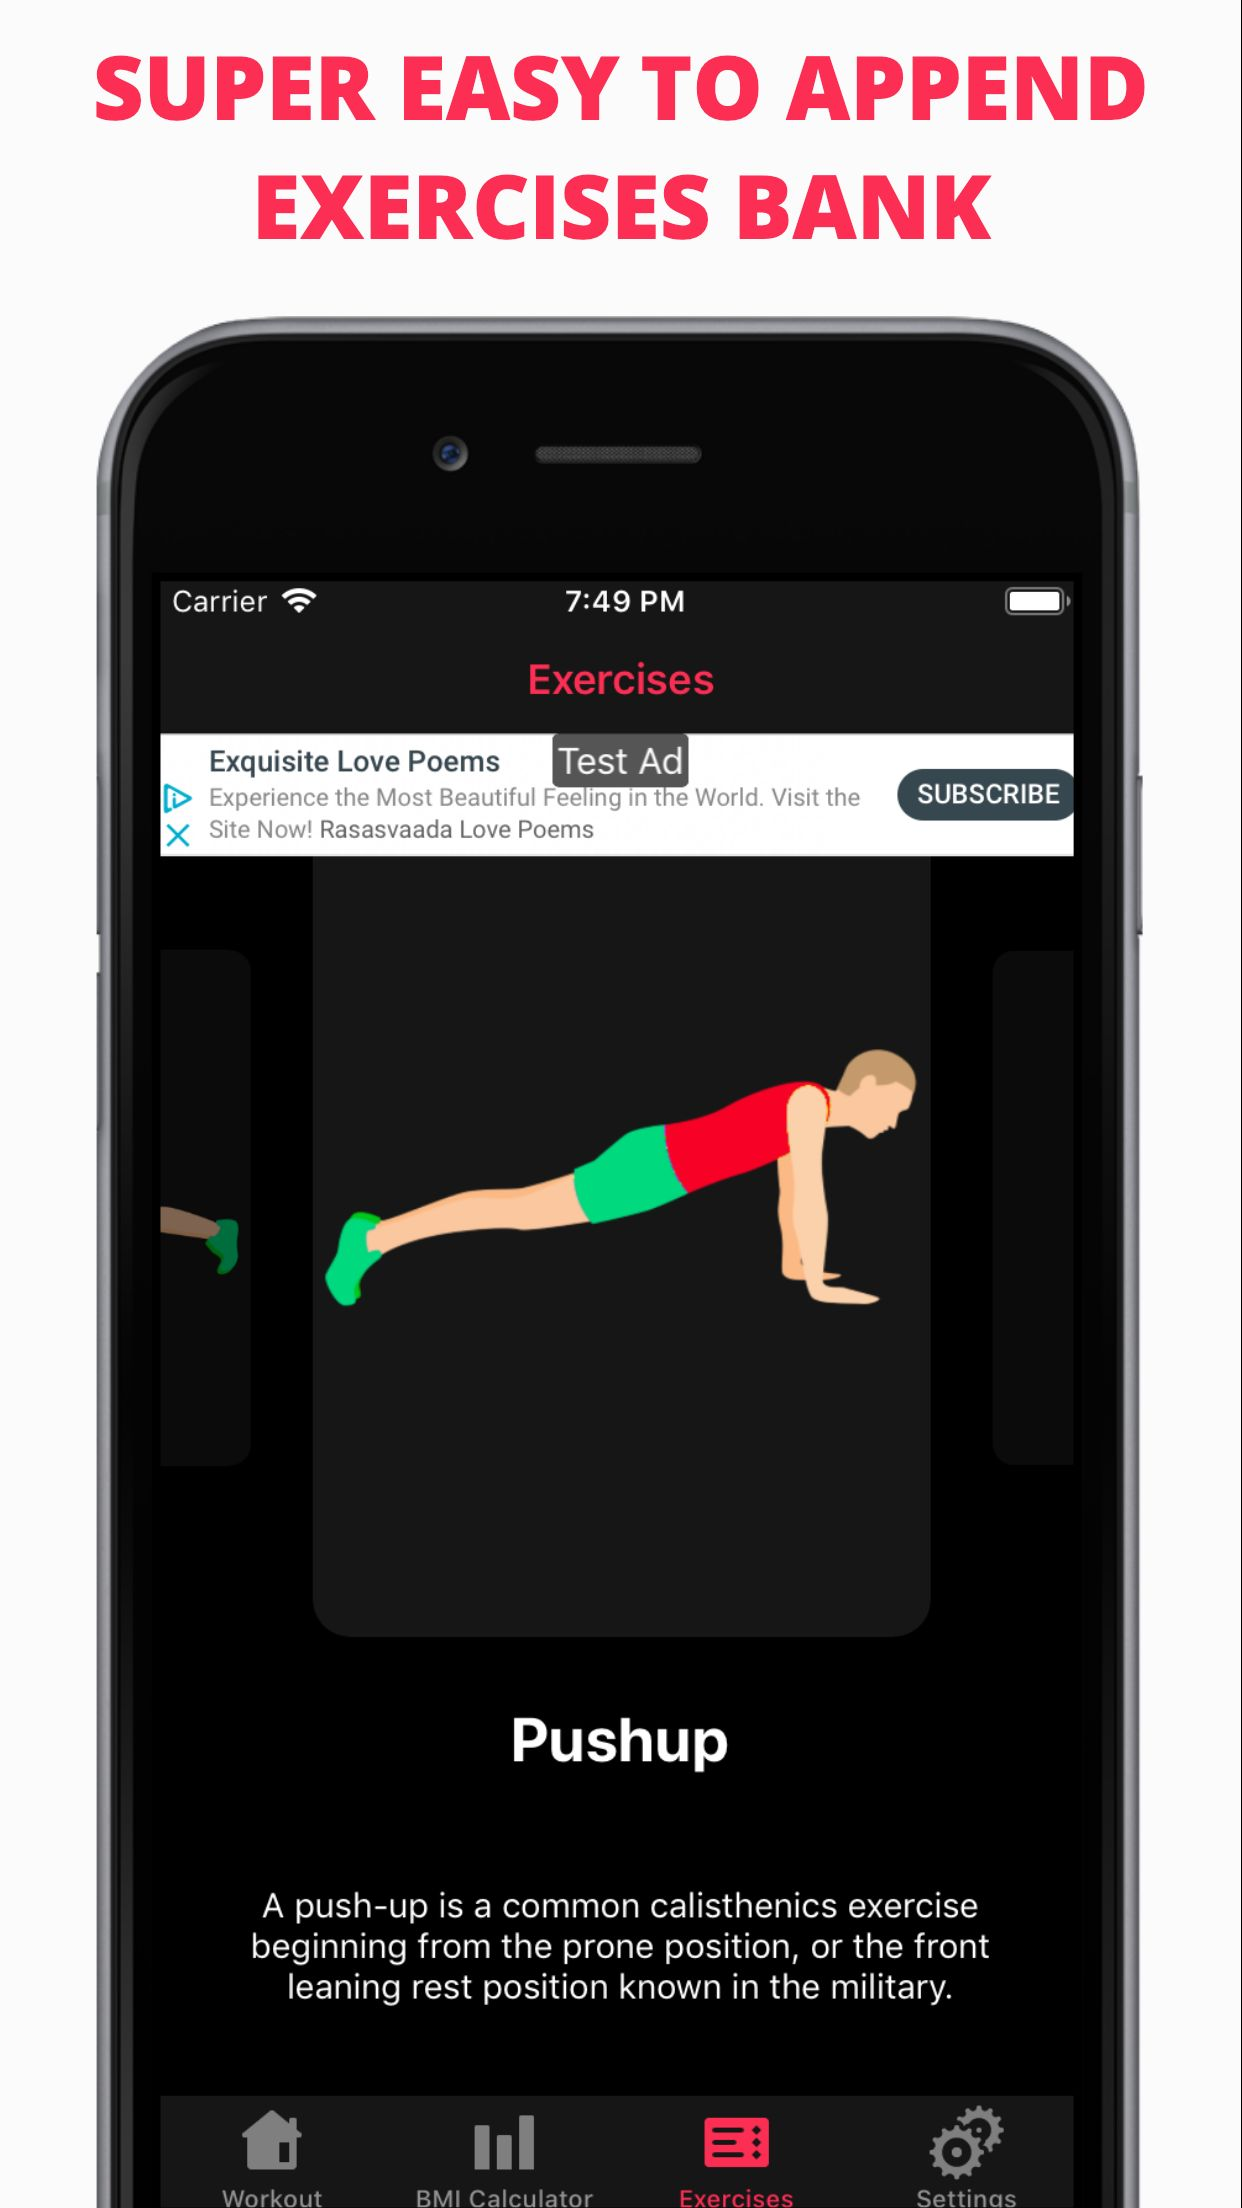 Easy Workout - iOS Fitness Application  Screenshot 8